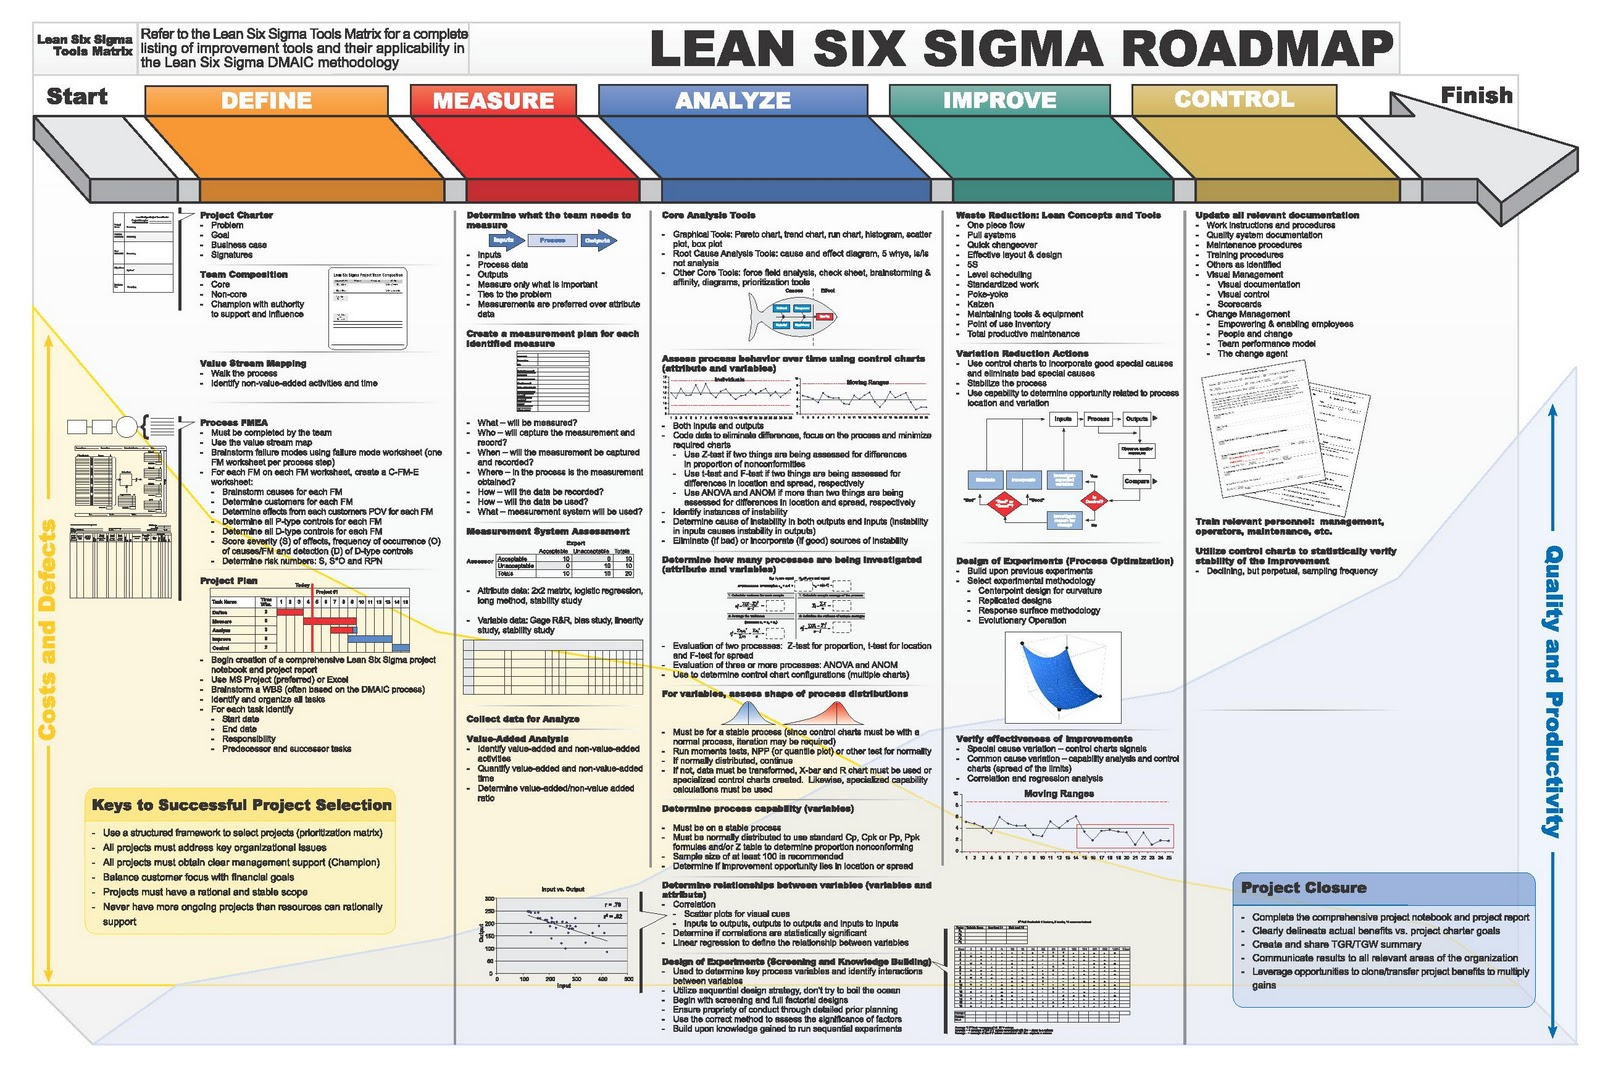 Lss dmaic roadmap huge 1600 1067 continuous for Six sigma flow chart template